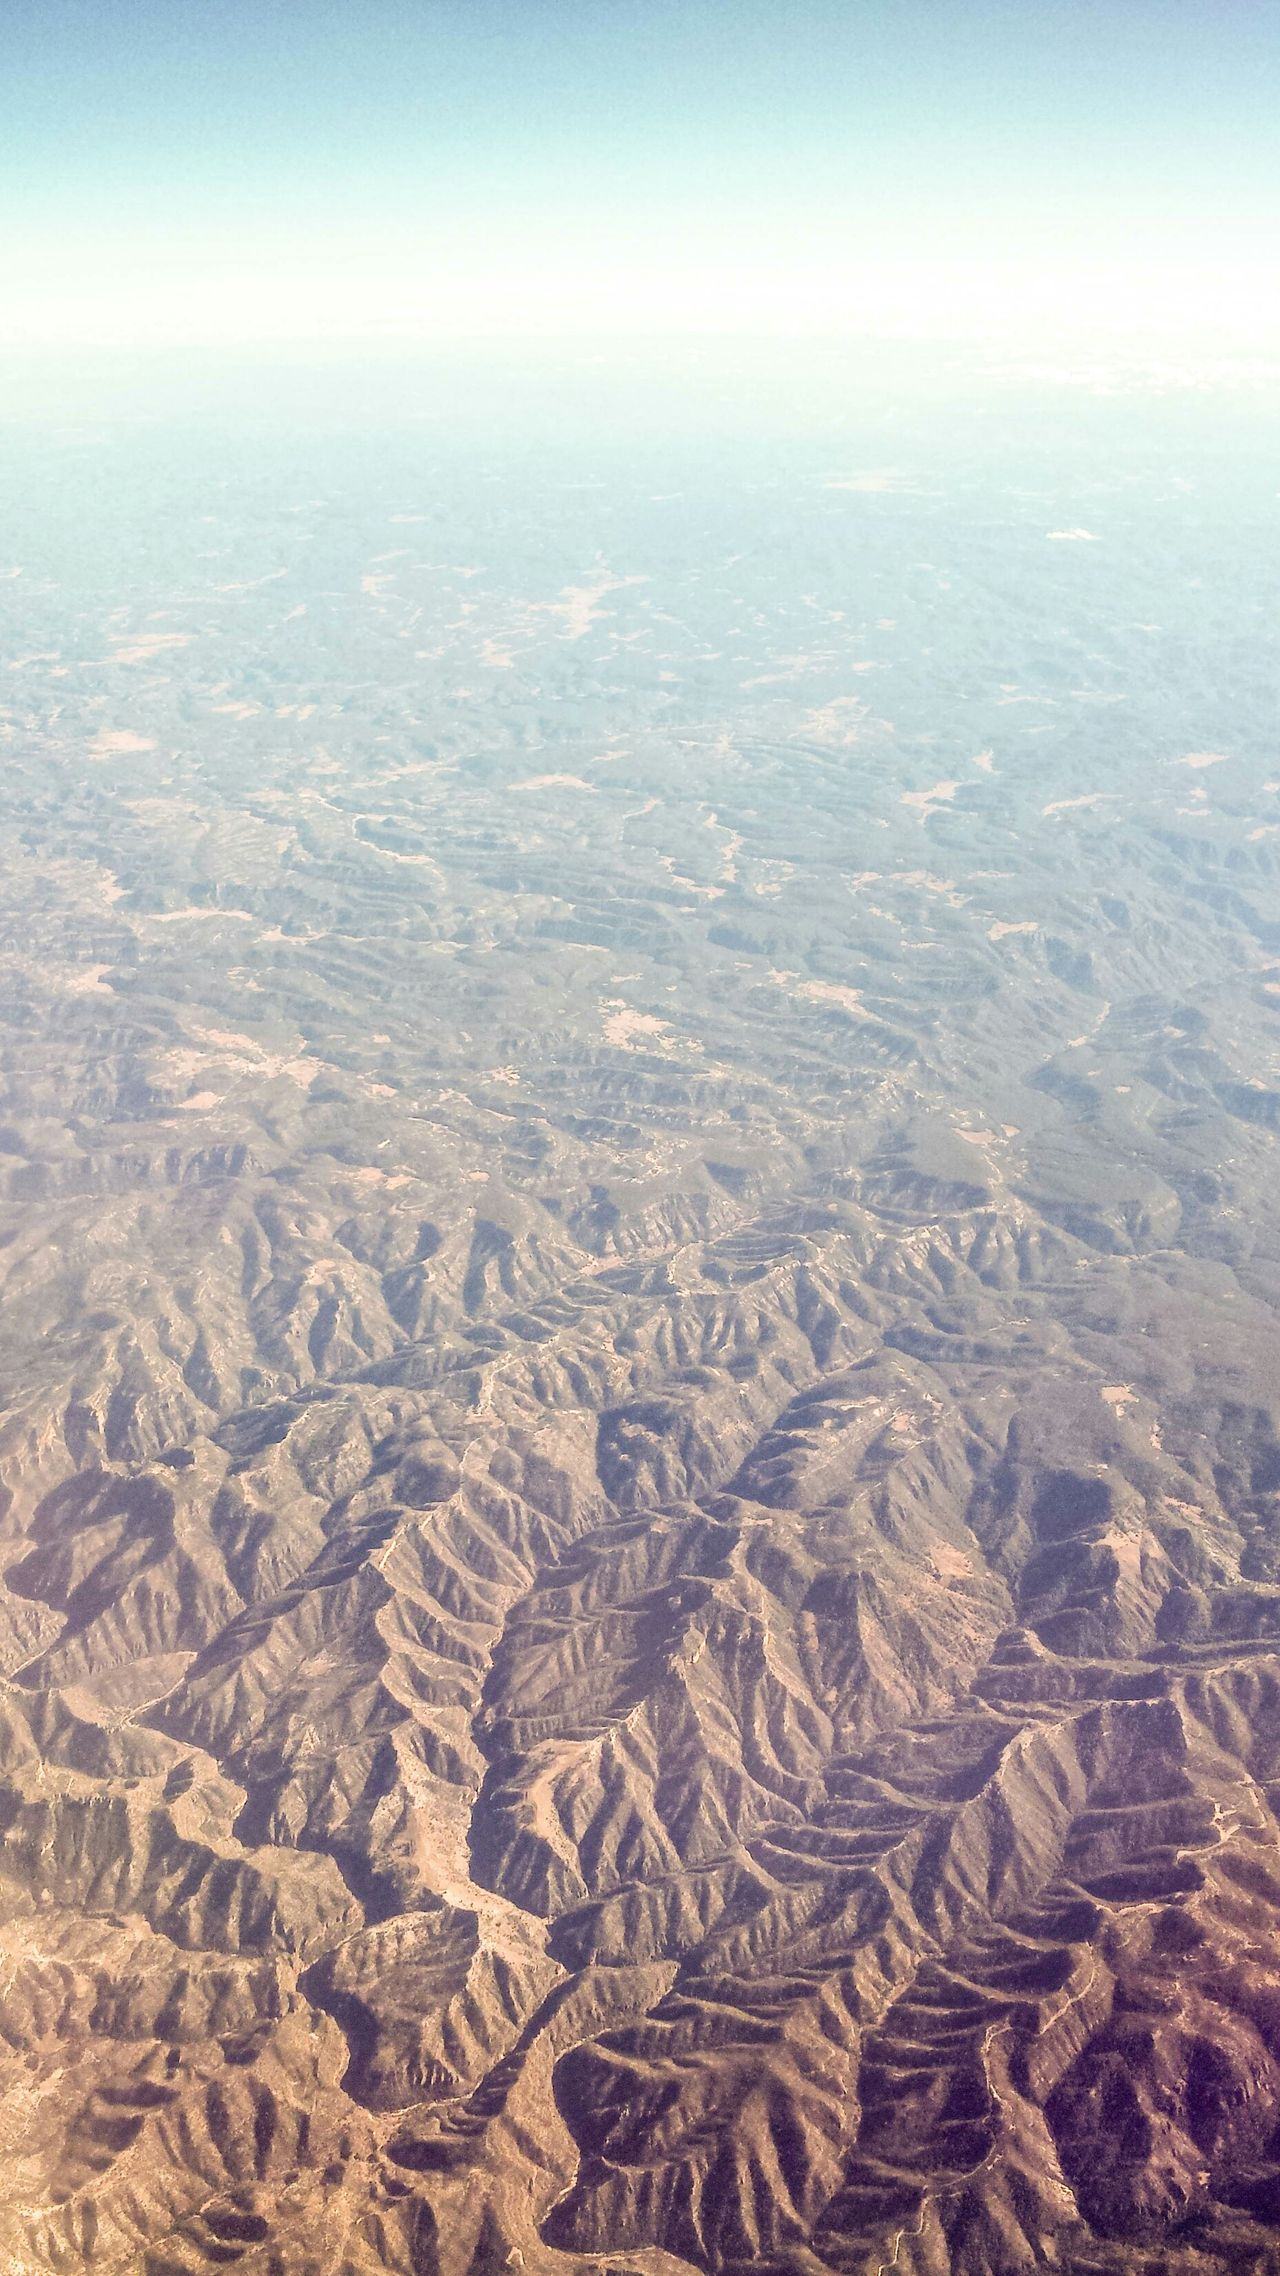 P @eyeteam @teamlane view somewhere over south America Fromanairplanewindow Eye4photography  Eye Em Nature Lover Check This Out Photography Taking Photos Eye For Photography Mountain View